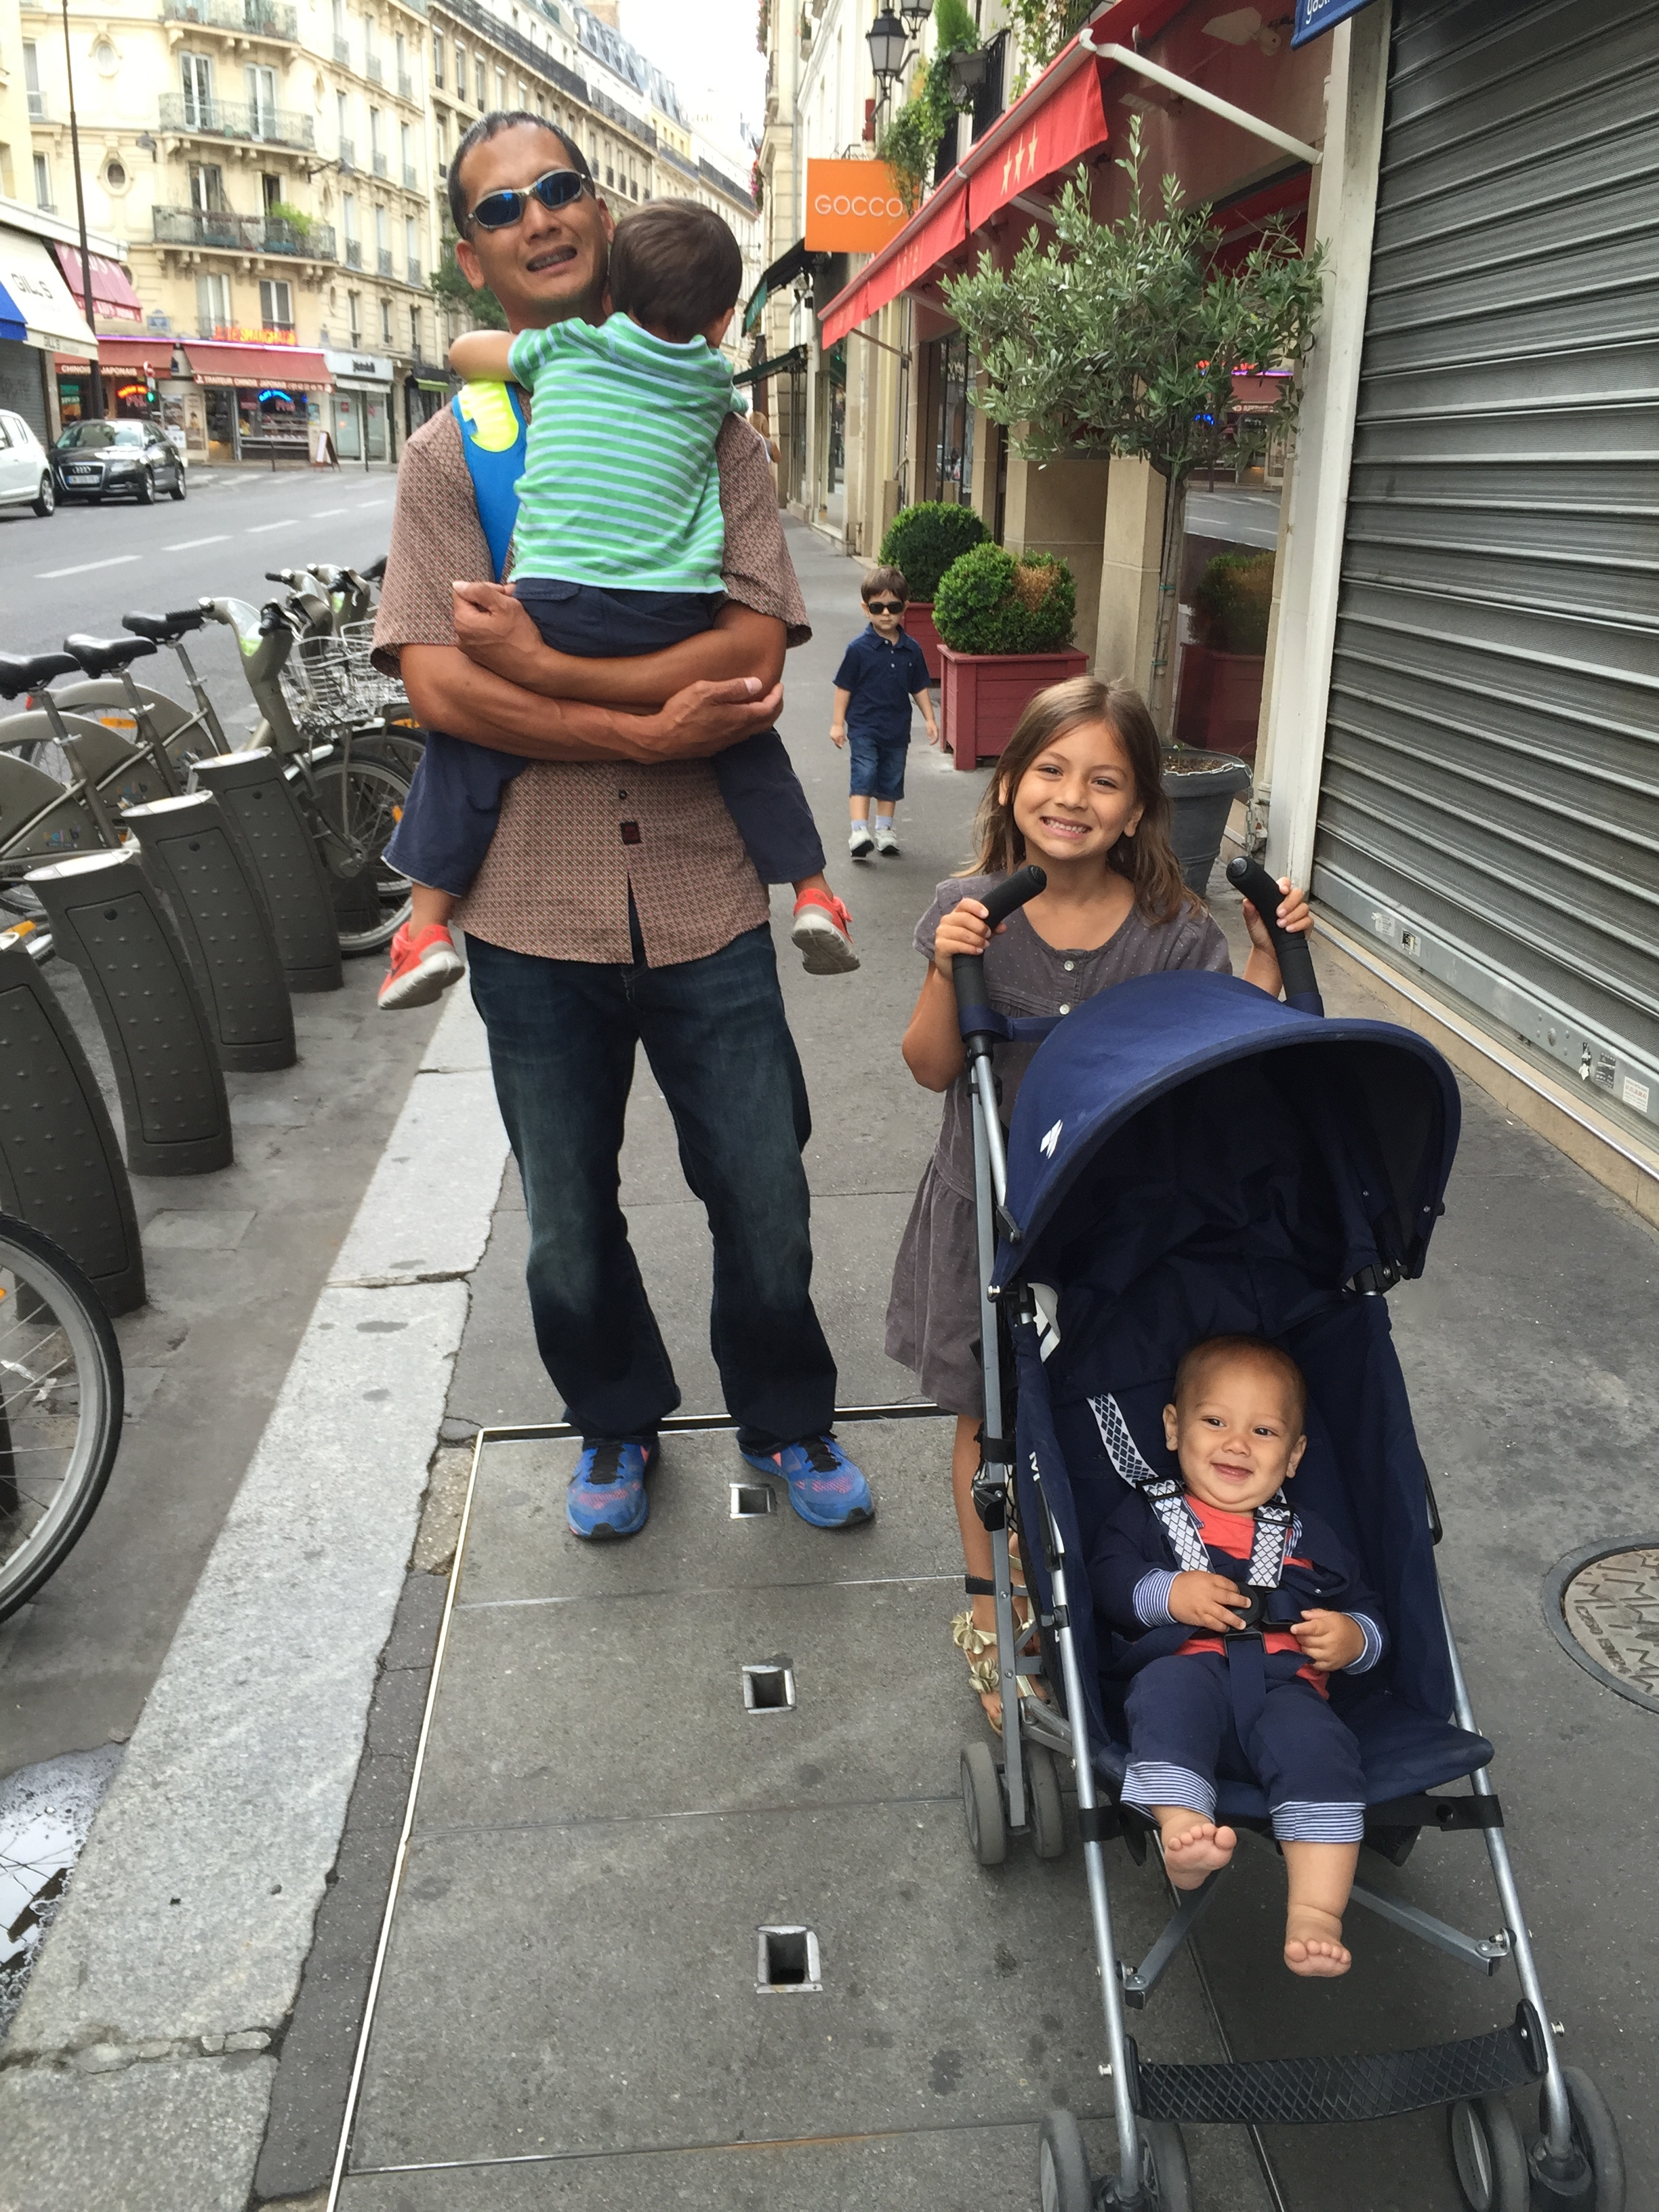 Paris by stroller family France American